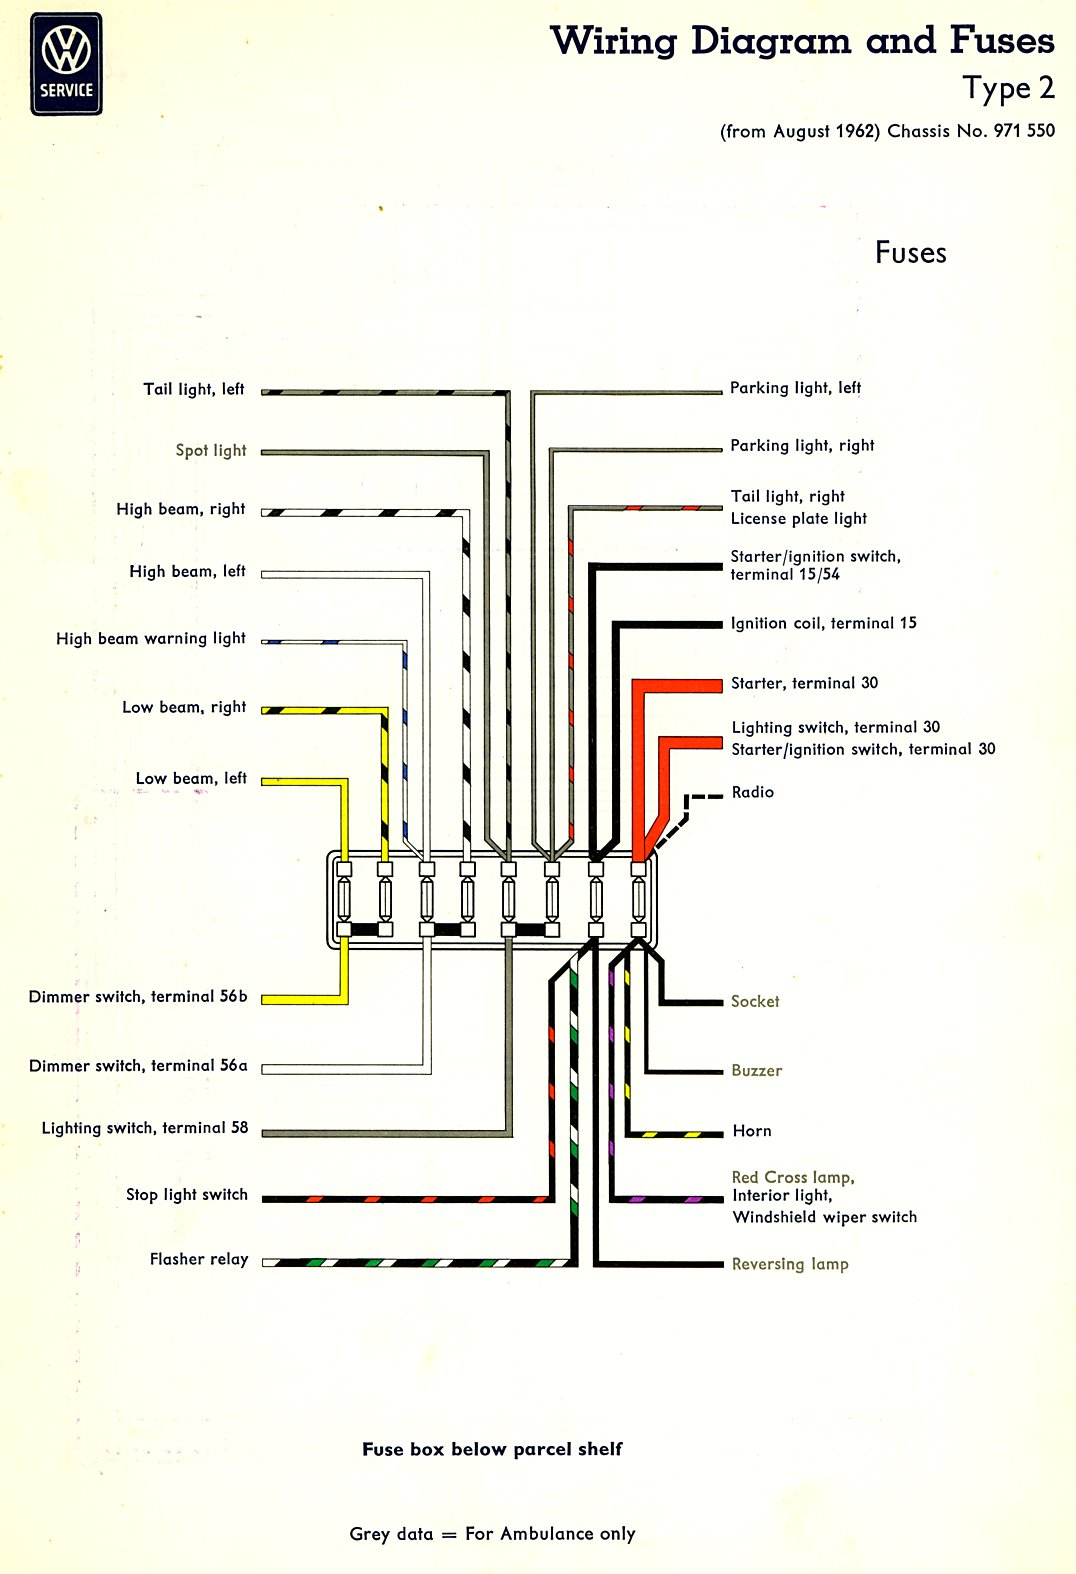 bus_63_fuses thesamba com type 2 wiring diagrams 1979 bronco fuse box diagram at bakdesigns.co